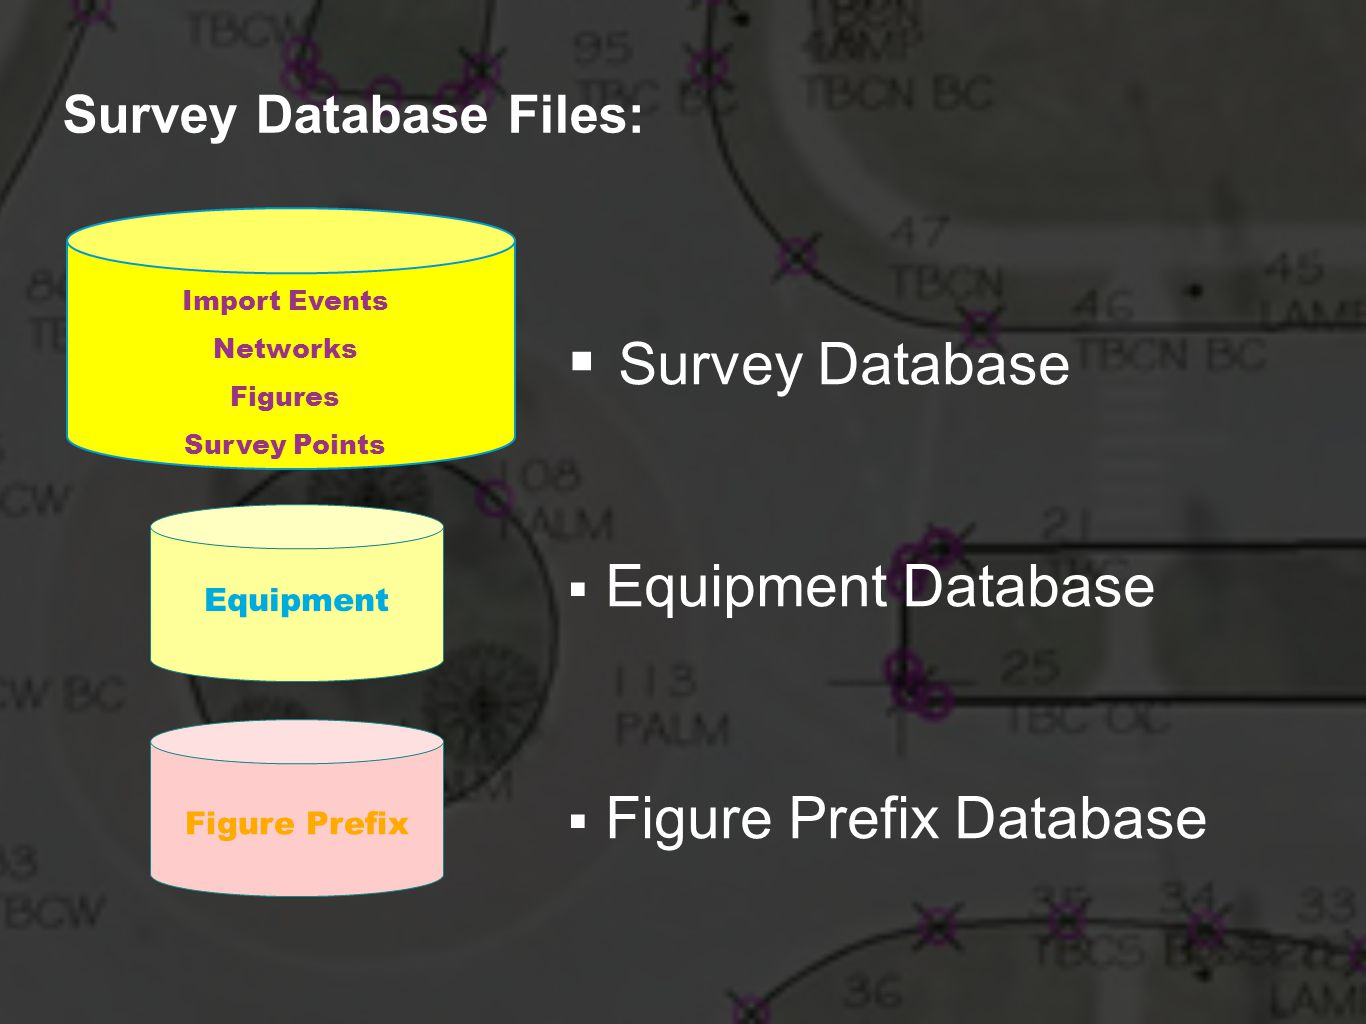 Survey Database Files: